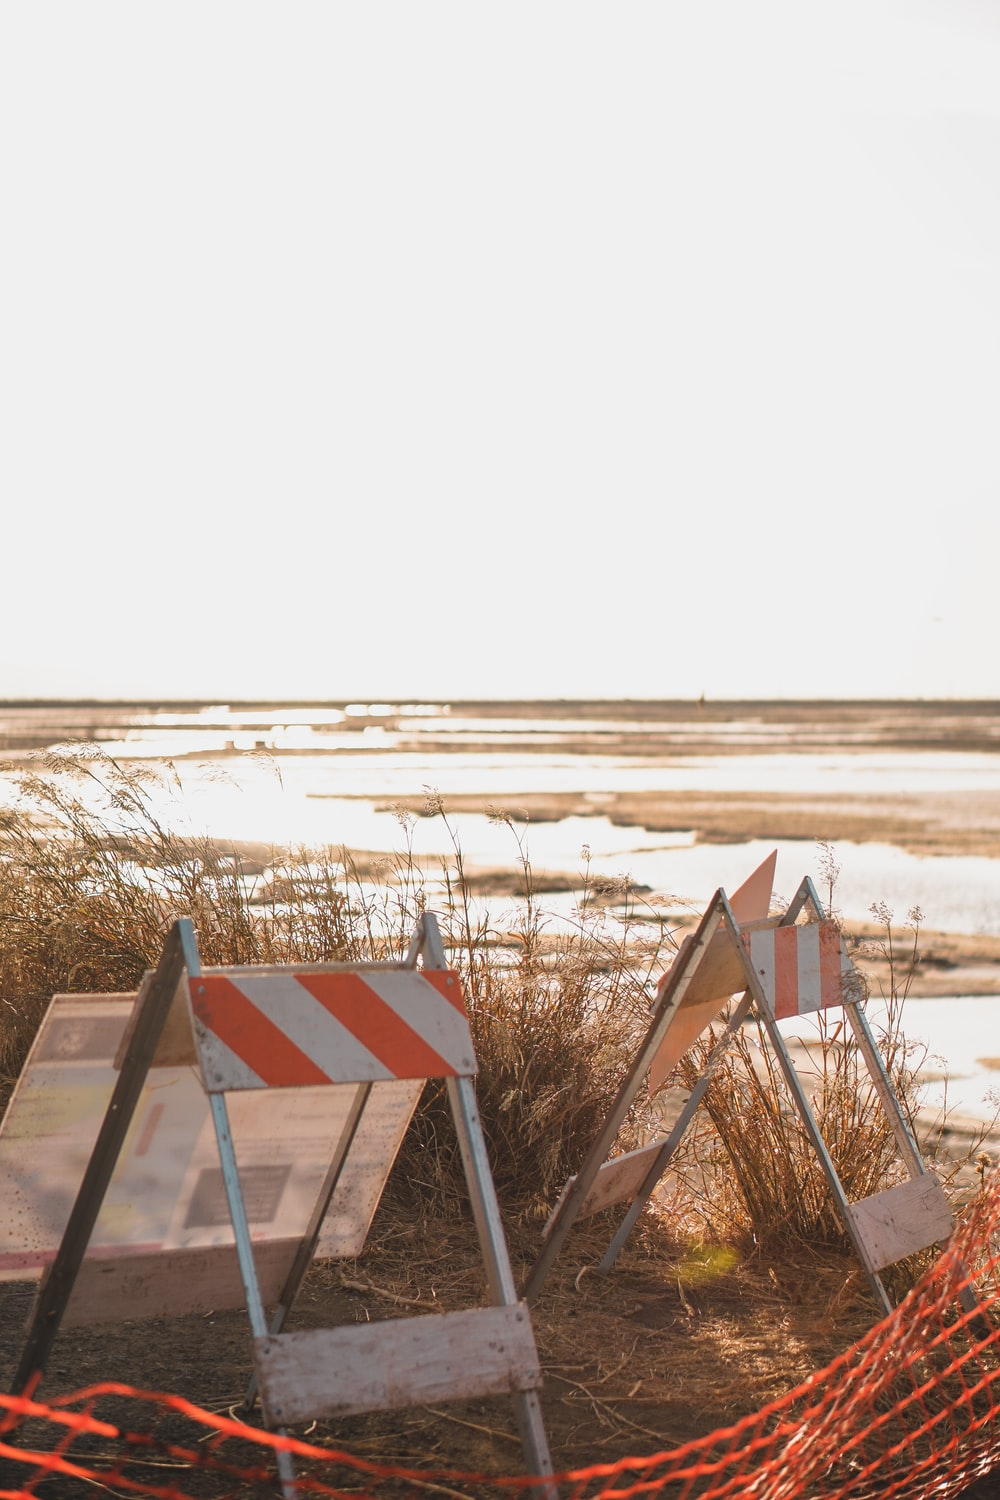 two folding signs on soil ground near body of water